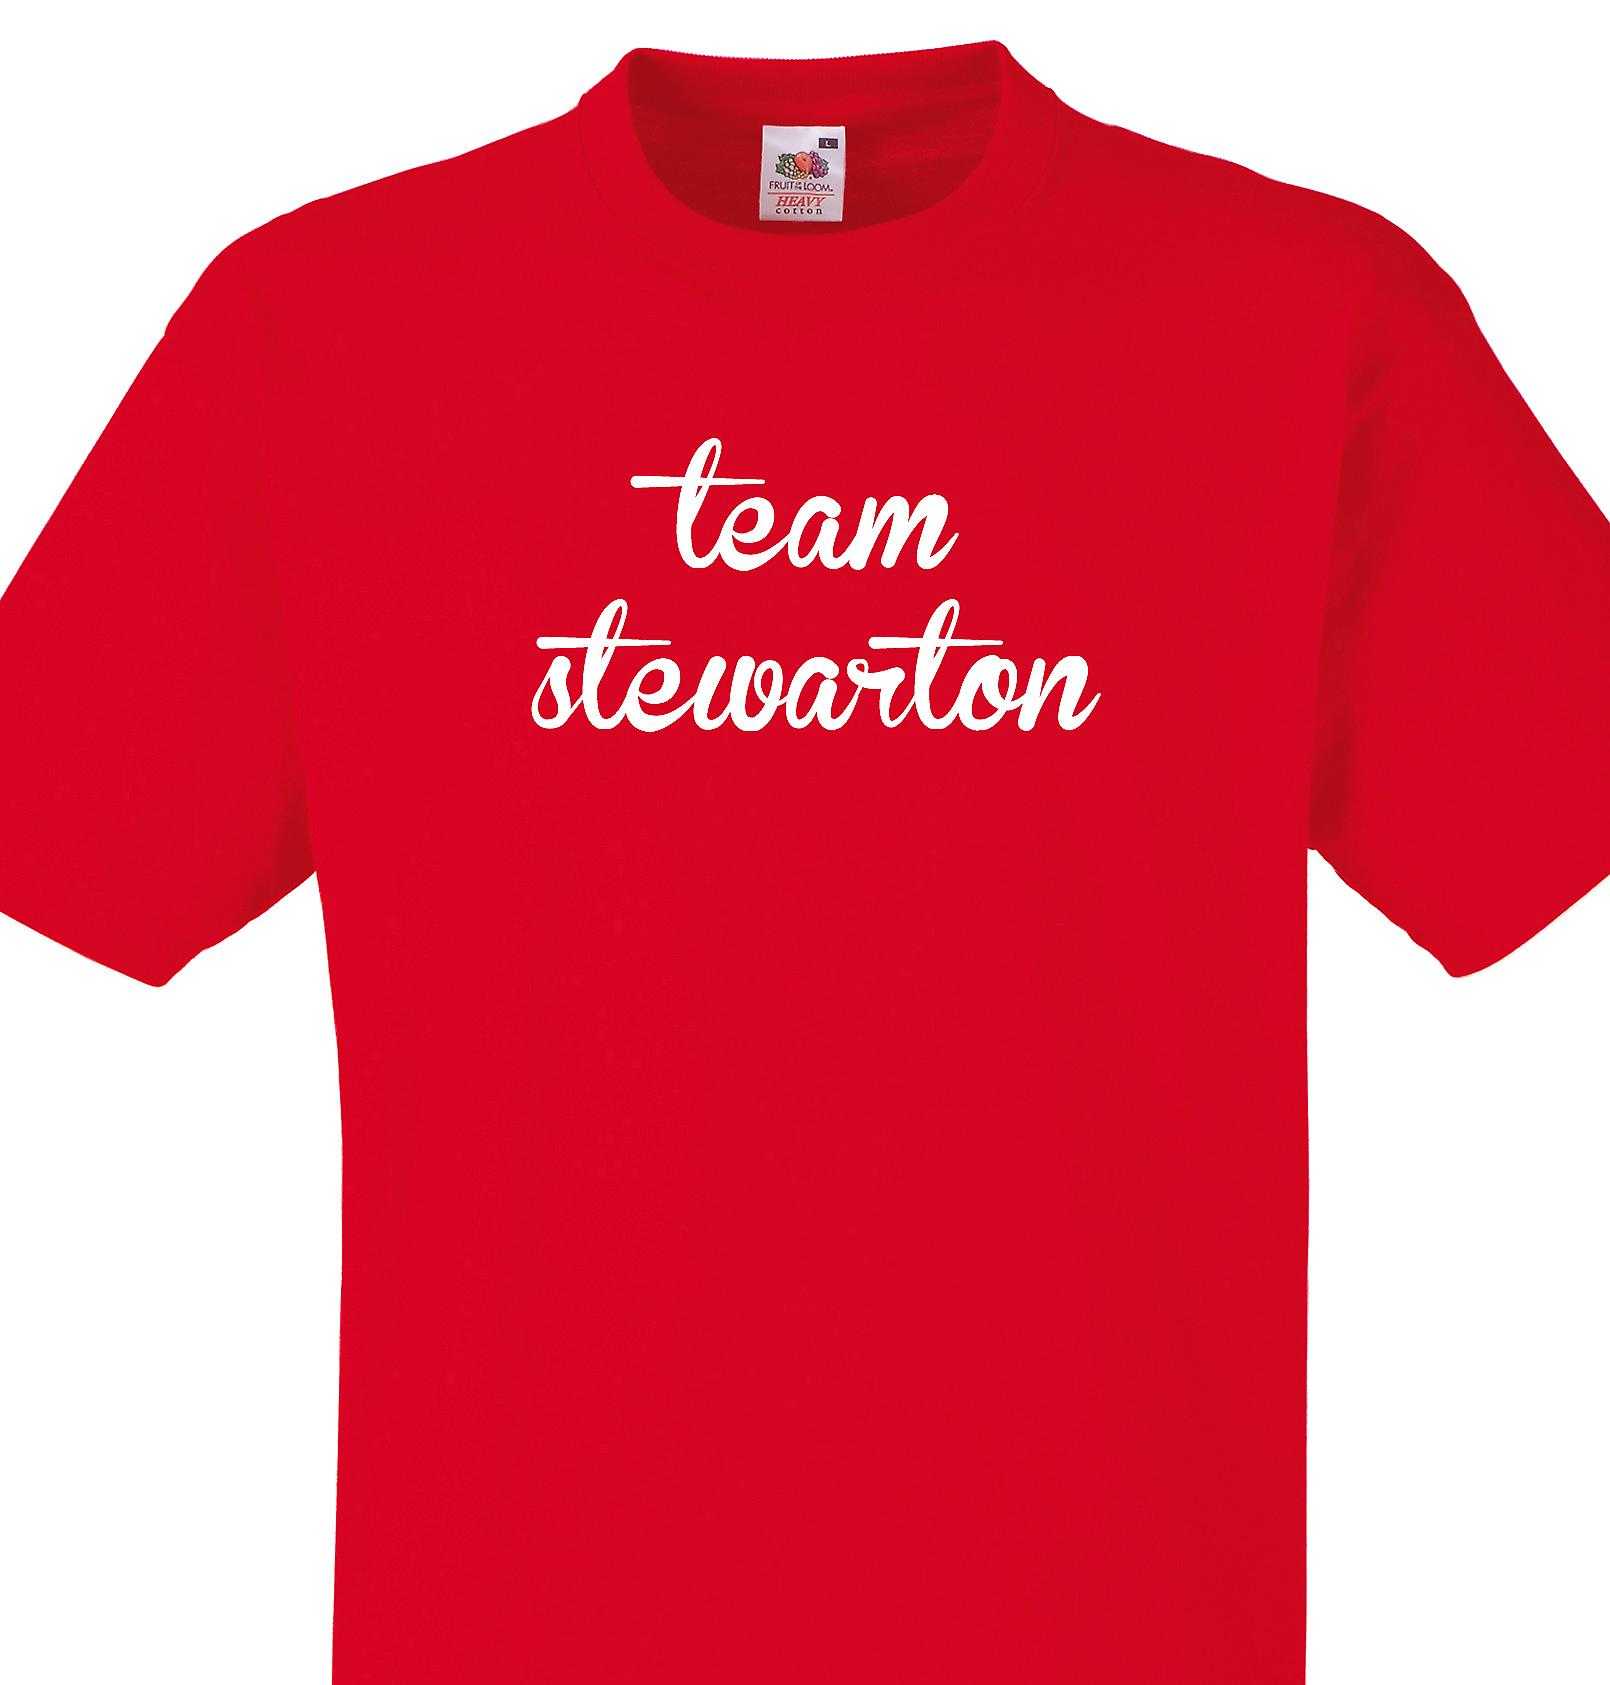 Team Stewarton Red T shirt